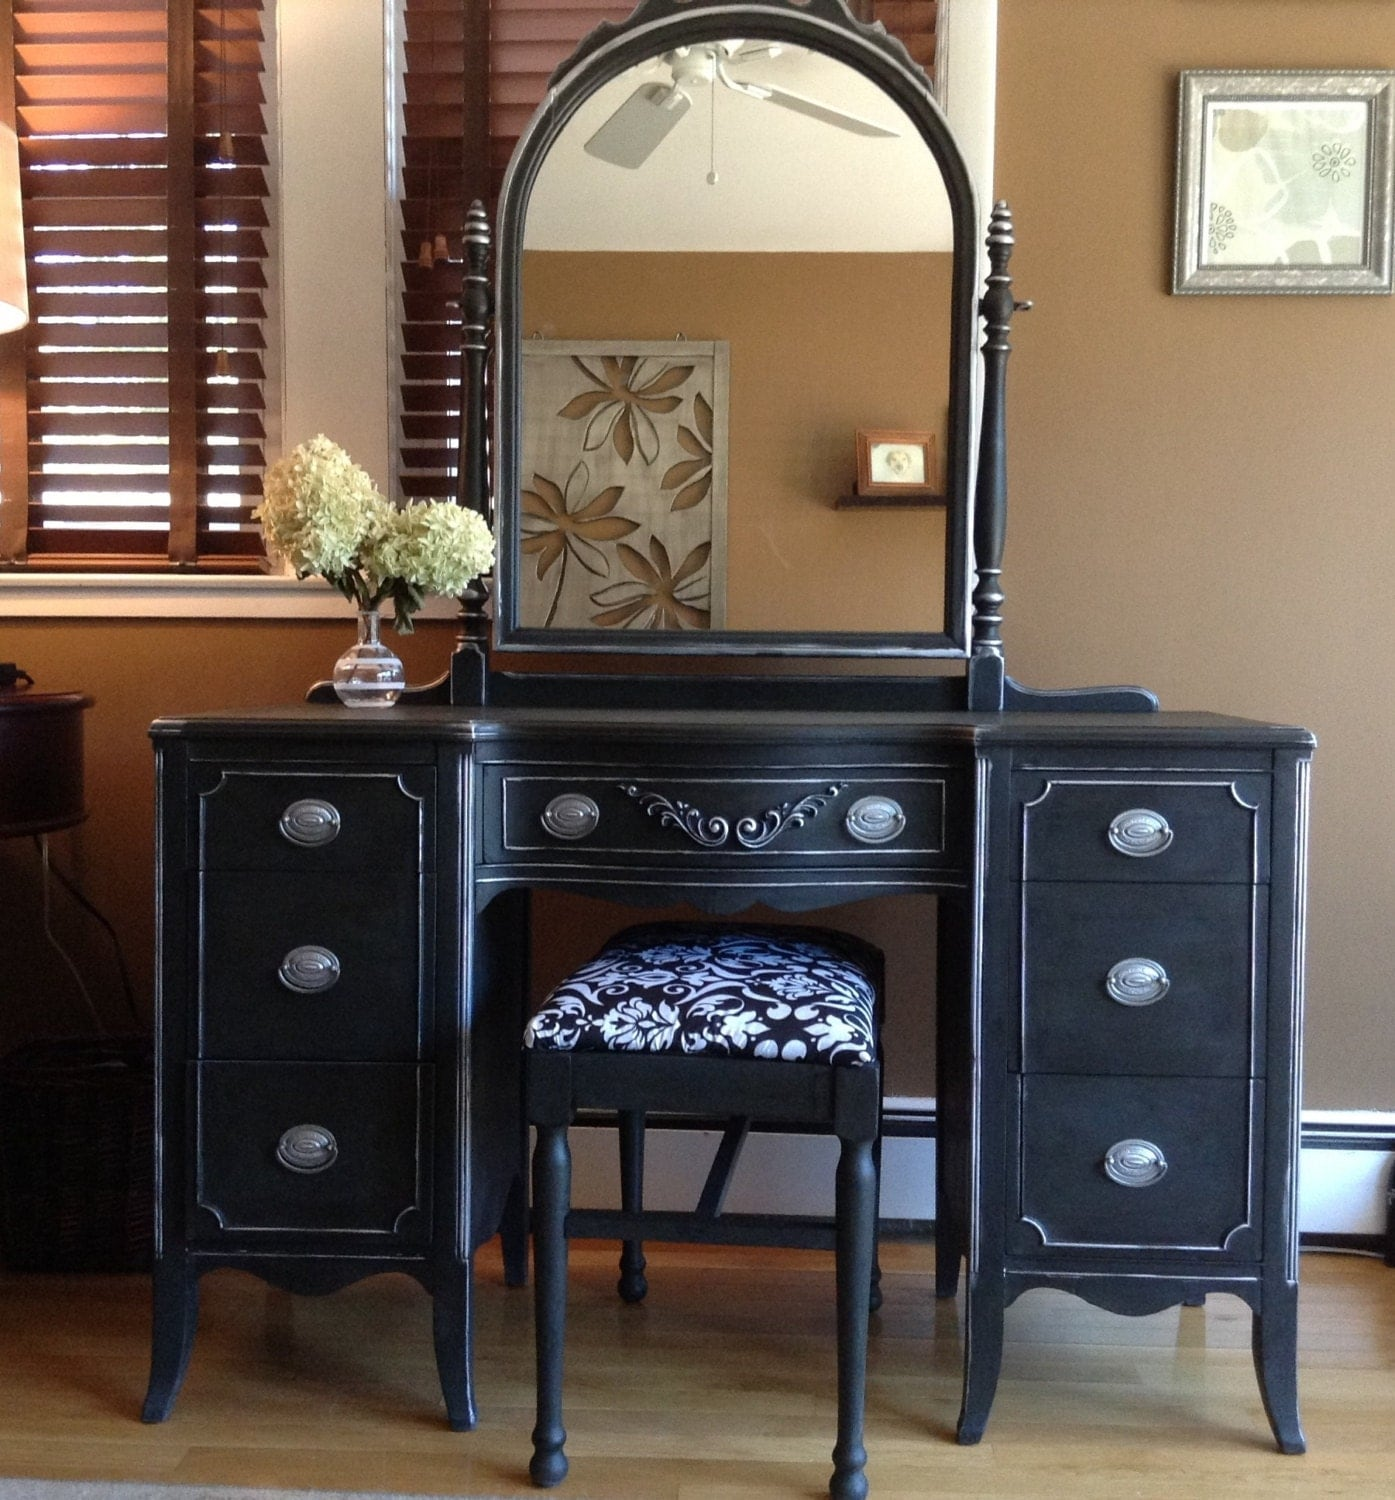 Soldbeautiful Silver And Black Vintage Vanity